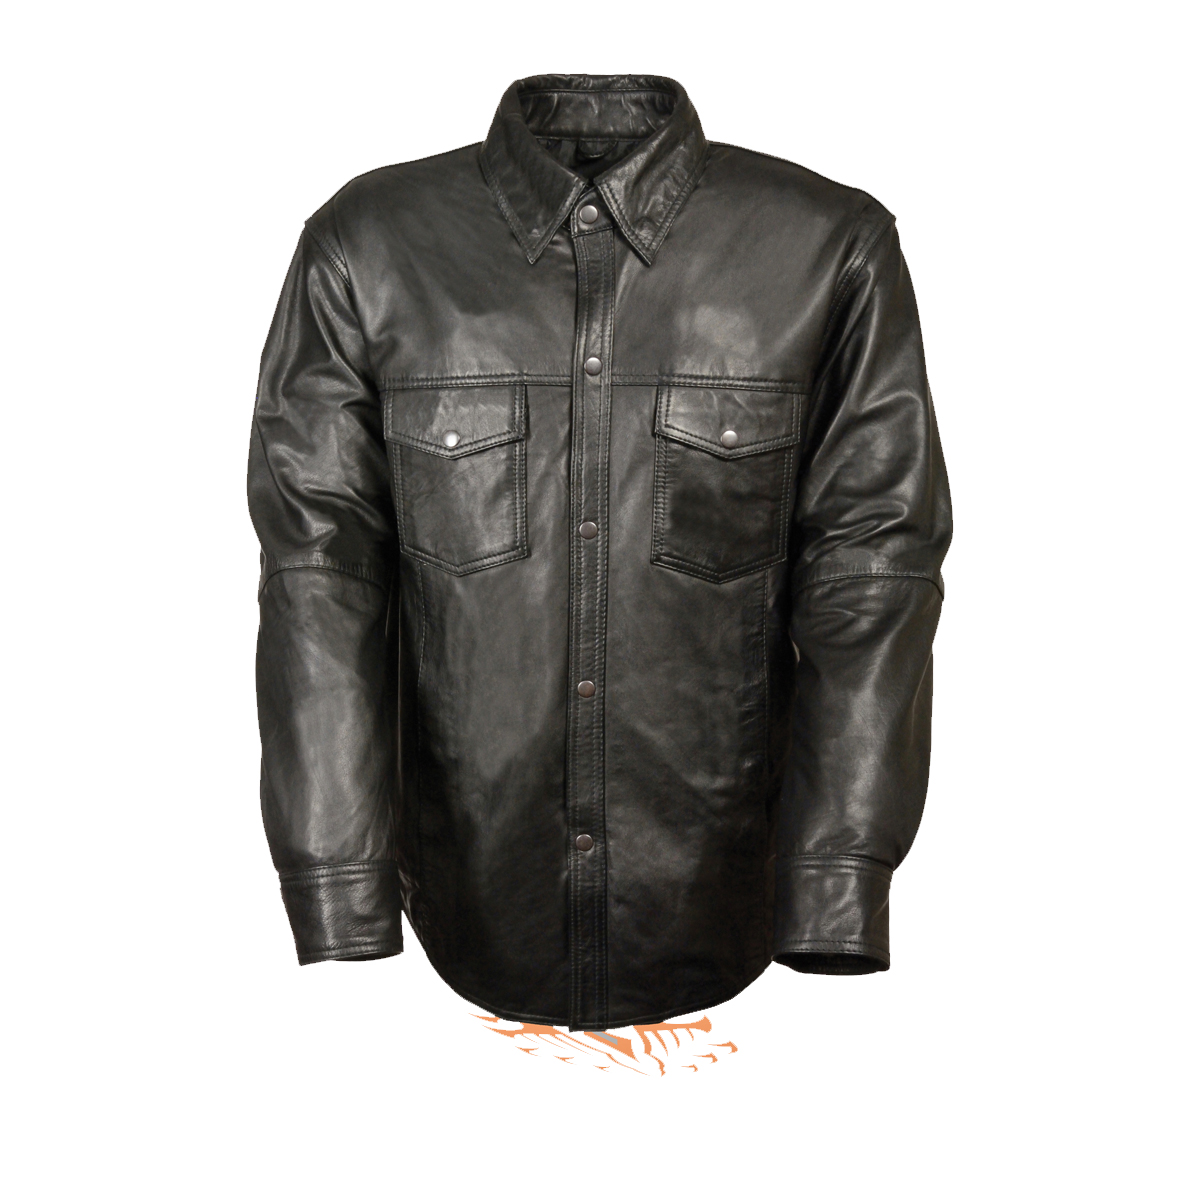 Leather jacket for motorcycle riding - Men S Leather Shirt Cowhide Leather Motorcycle Rider Shirt